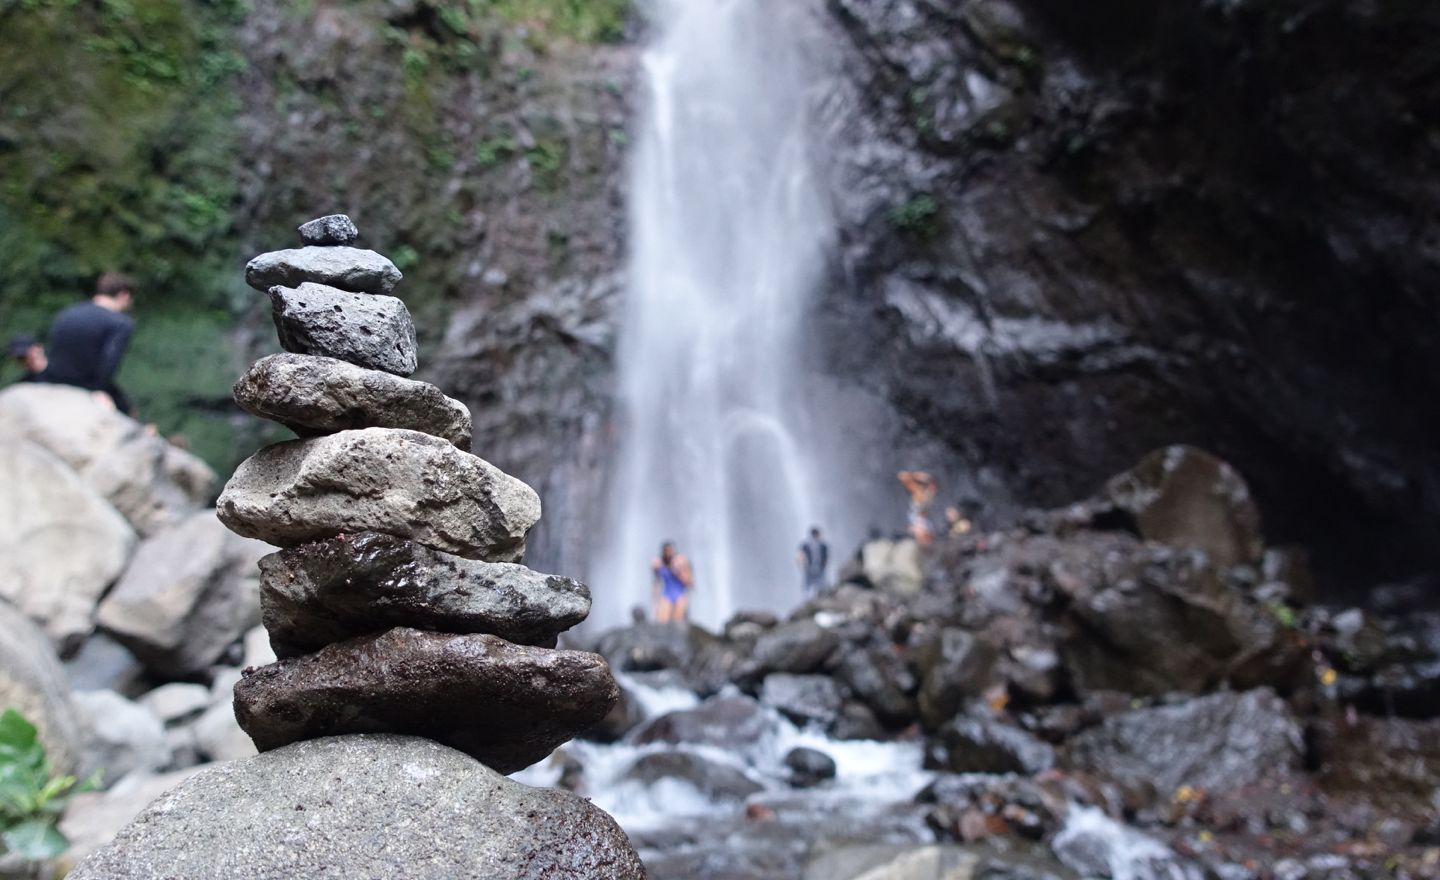 Day 6 : Preschool Service and Waterfall Adventure